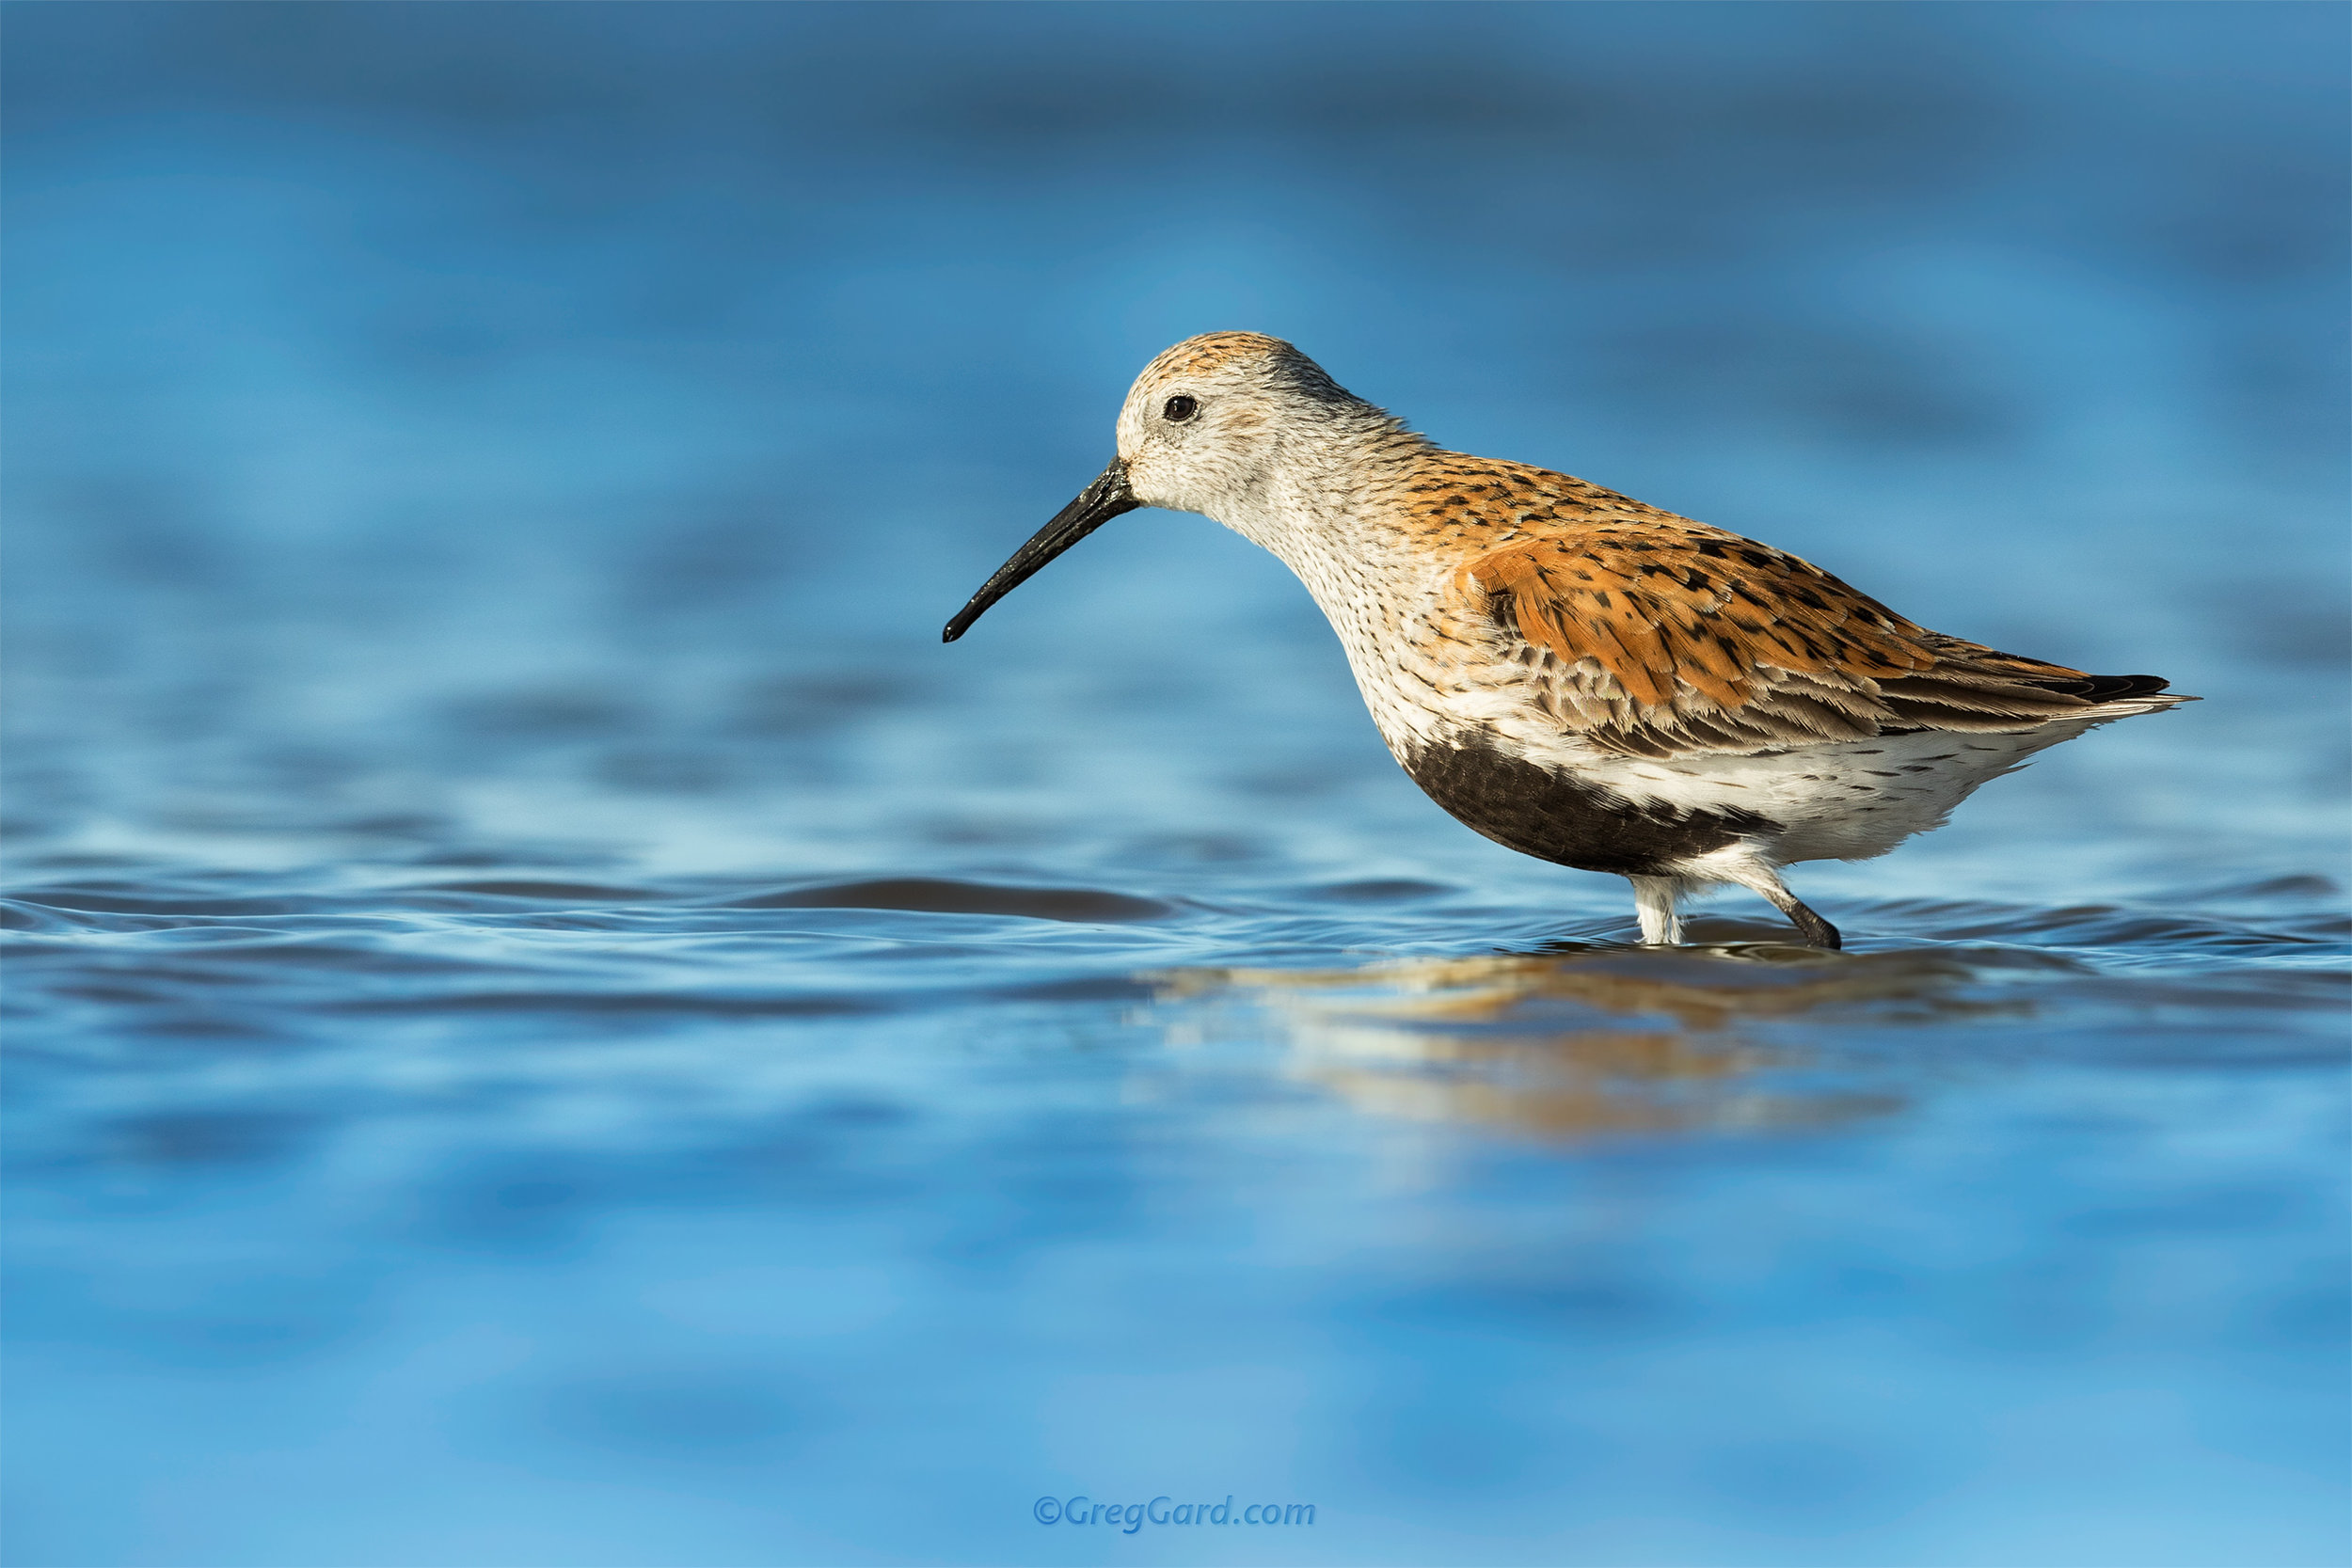 Dunlin in breeding plumage - Stone Harbor, NJ